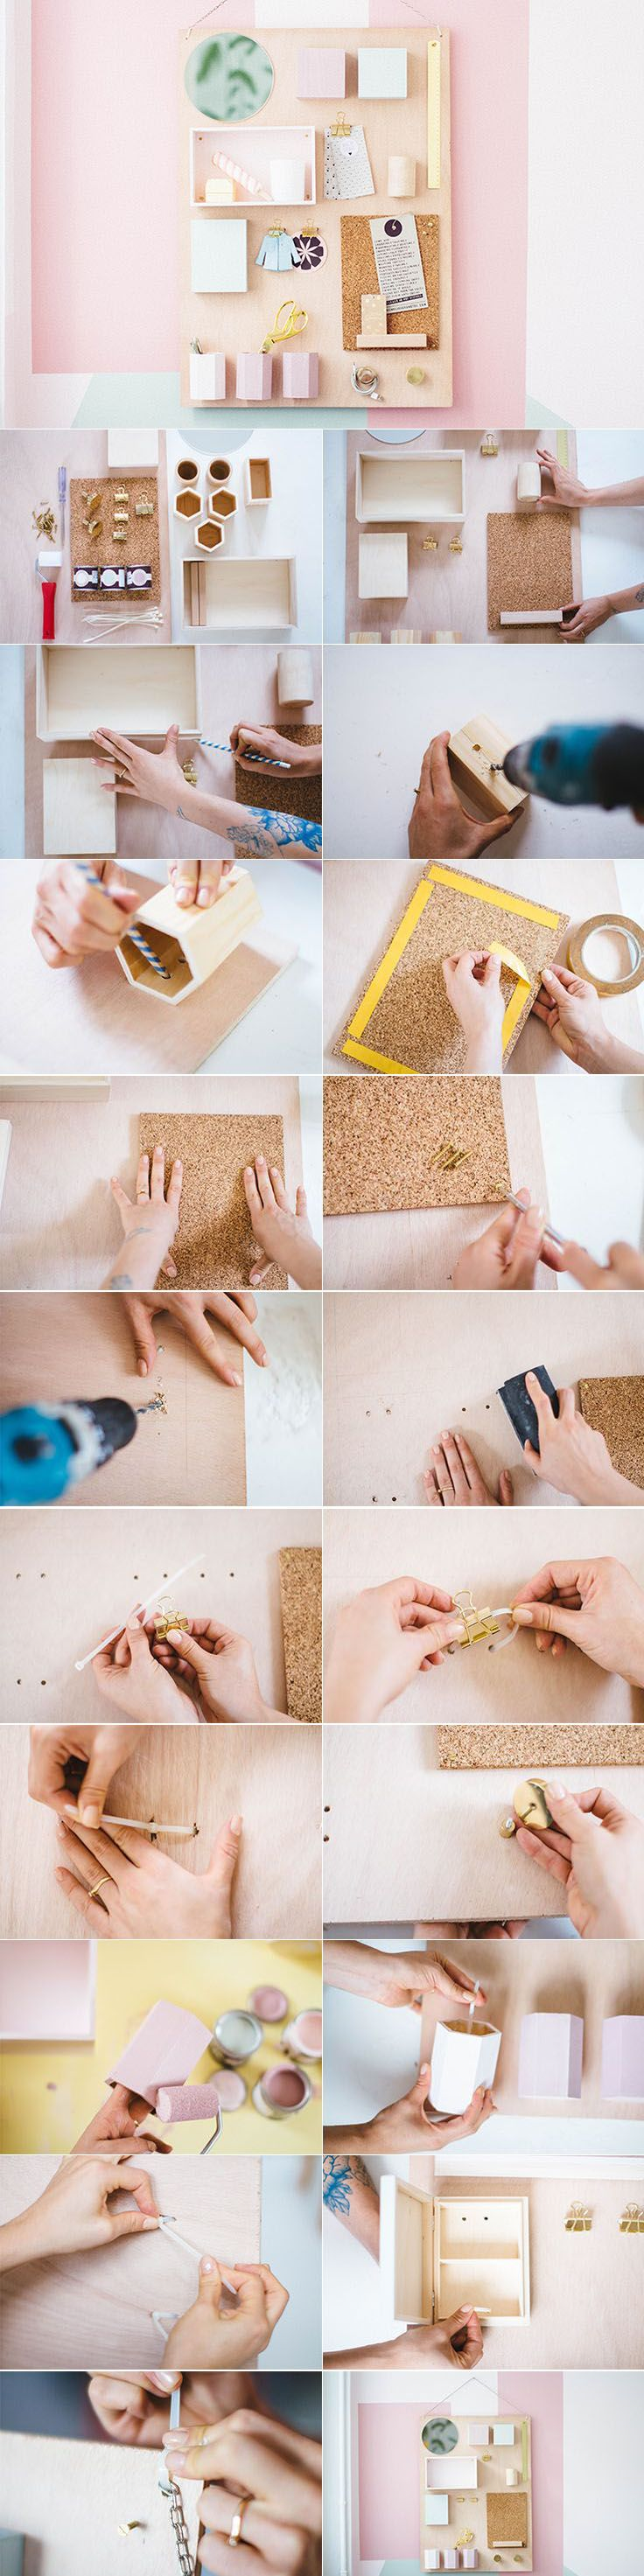 http://makemylemonade.com/diy-organizer-board/